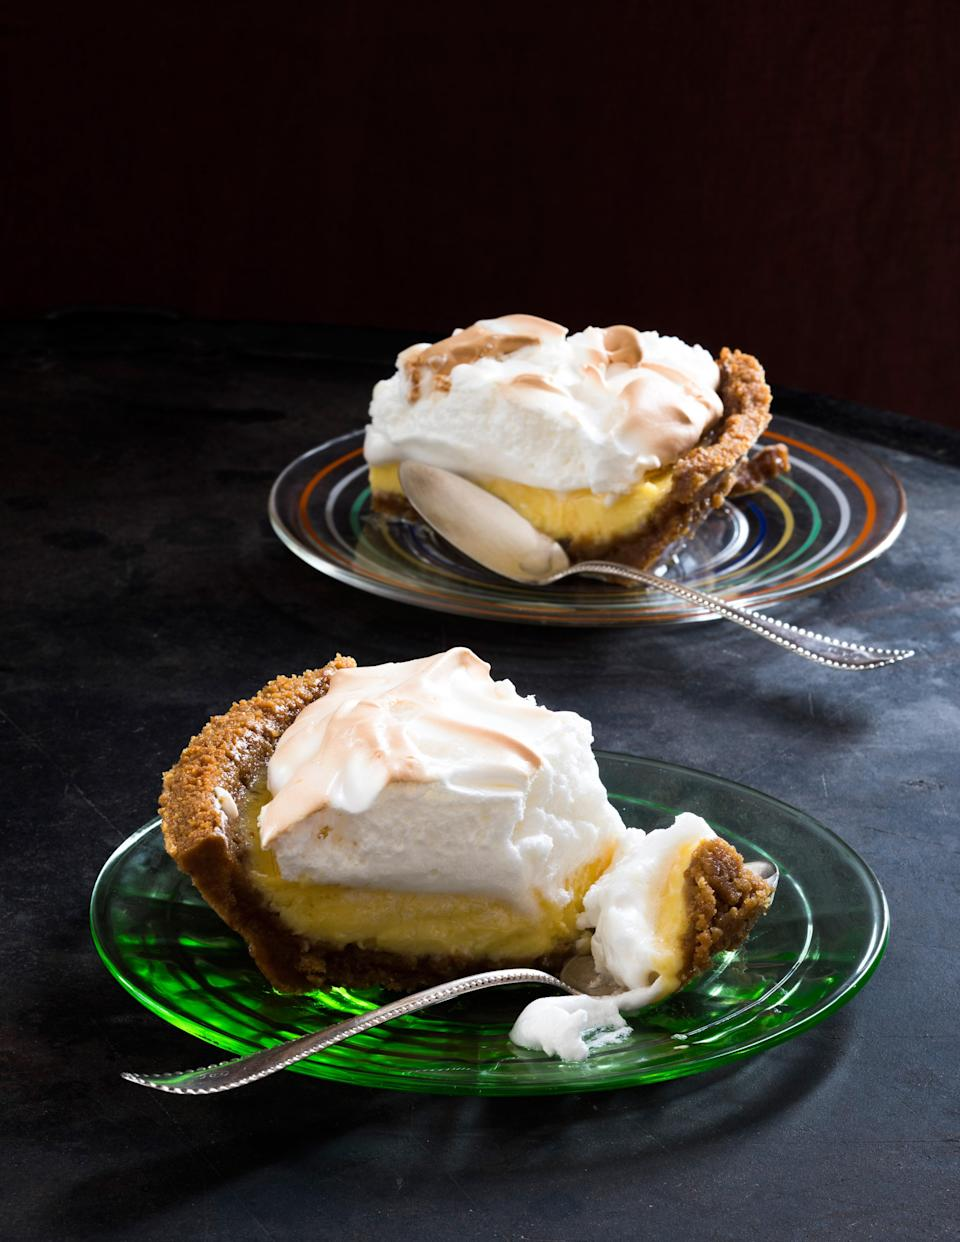 "Chef Alexander Smalls, claims it's impossible to mess up this easy dessert recipe. Which is great, since it's ideal to have on hand after a spicy <a href=""https://www.epicurious.com/recipes-menus/best-grilling-recipes-gallery?mbid=synd_yahoo_rss"" rel=""nofollow noopener"" target=""_blank"" data-ylk=""slk:meal from the grill"" class=""link rapid-noclick-resp"">meal from the grill</a>. <a href=""https://www.epicurious.com/recipes/food/views/icebox-lemon-pie-with-meringue?mbid=synd_yahoo_rss"" rel=""nofollow noopener"" target=""_blank"" data-ylk=""slk:See recipe."" class=""link rapid-noclick-resp"">See recipe.</a>"